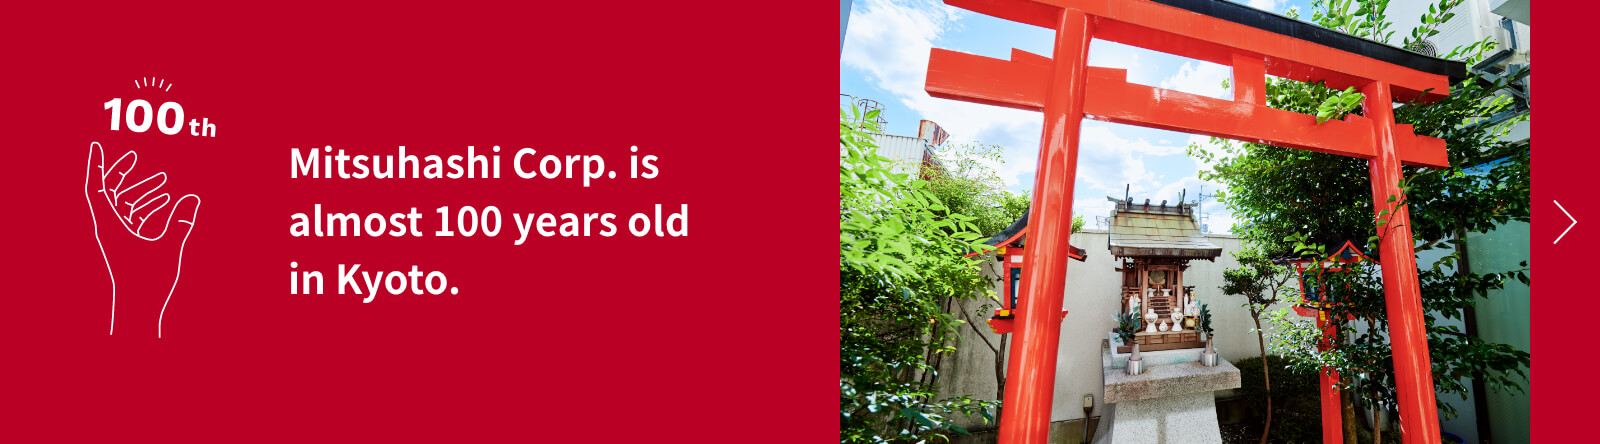 Mitsuhashi Corp. is almost 100 years old in Kyoto.